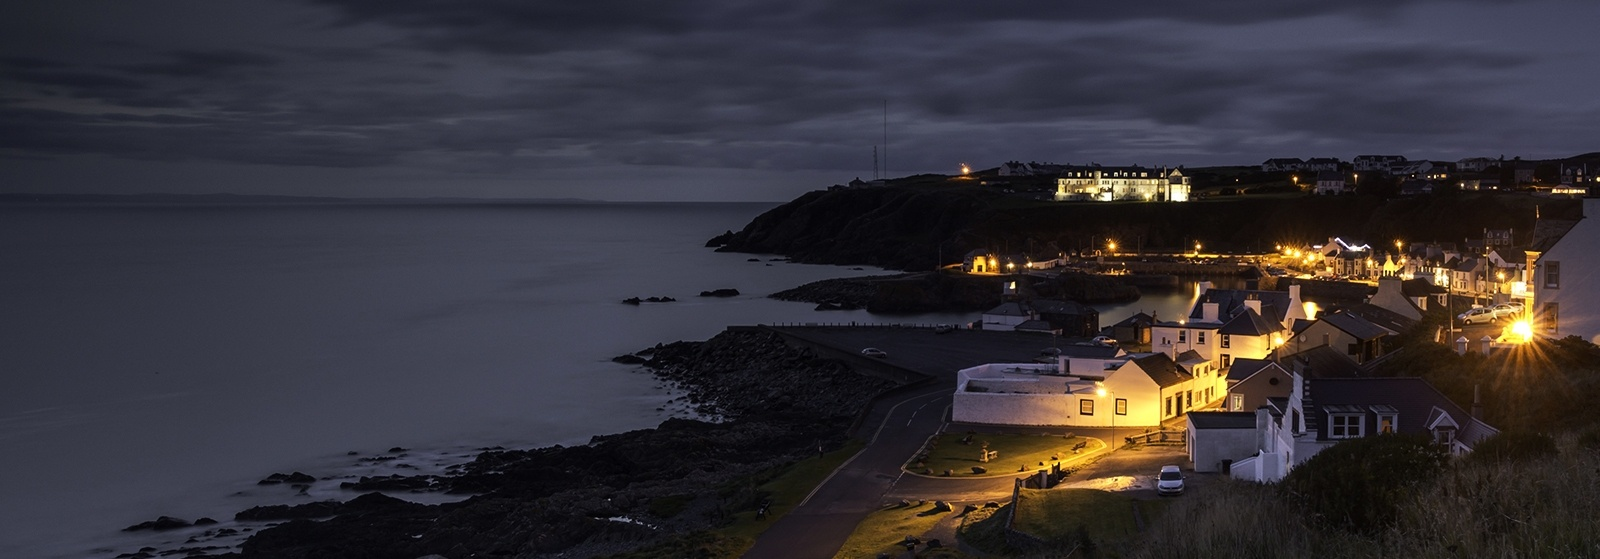 Picture of seaside town at dusk